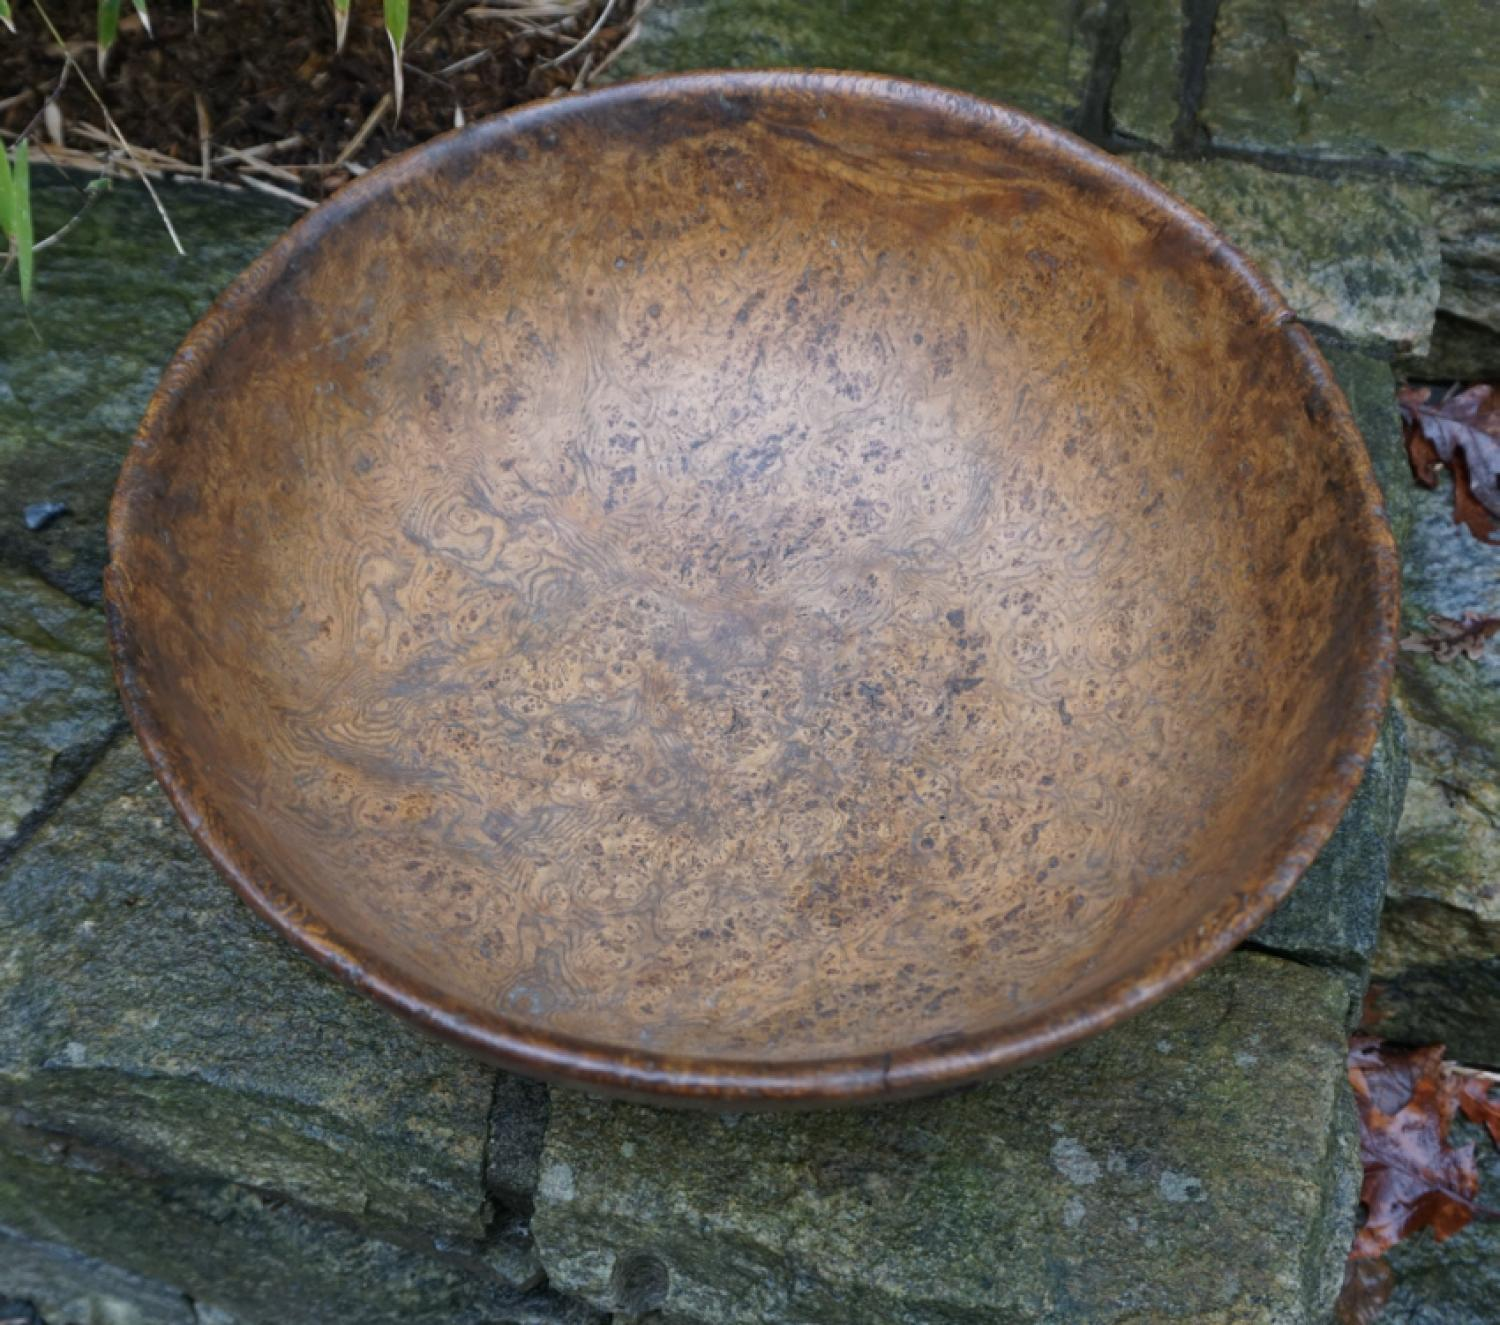 Early American burl bowl c1800